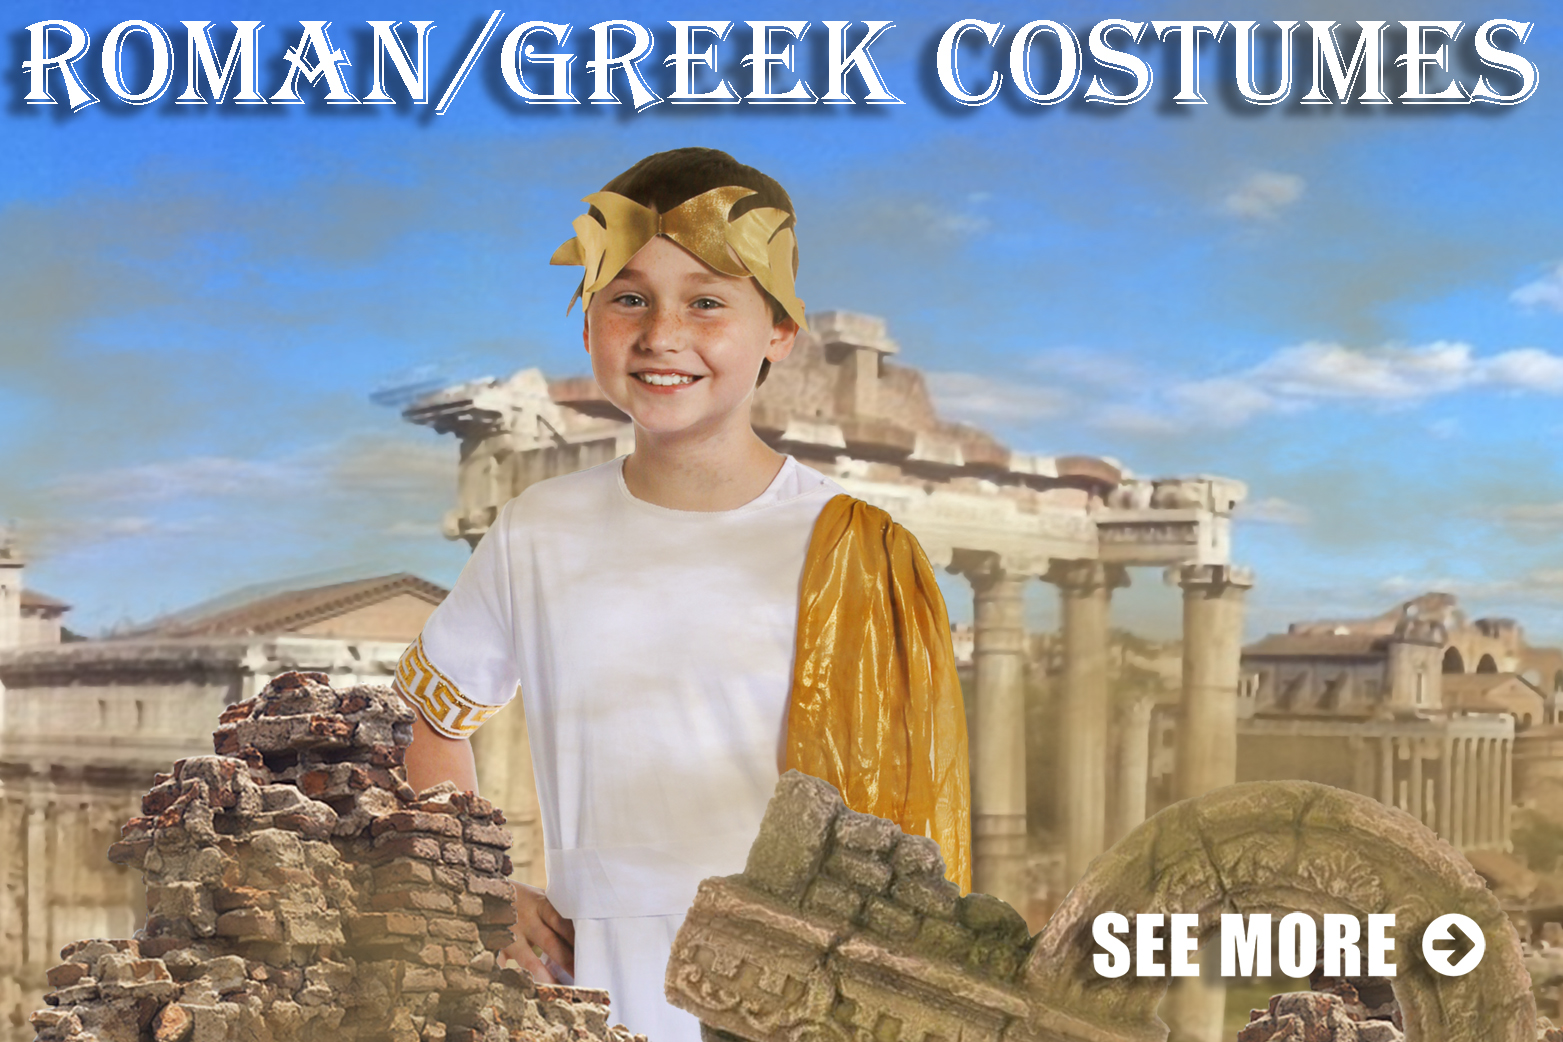 romans greek costumes